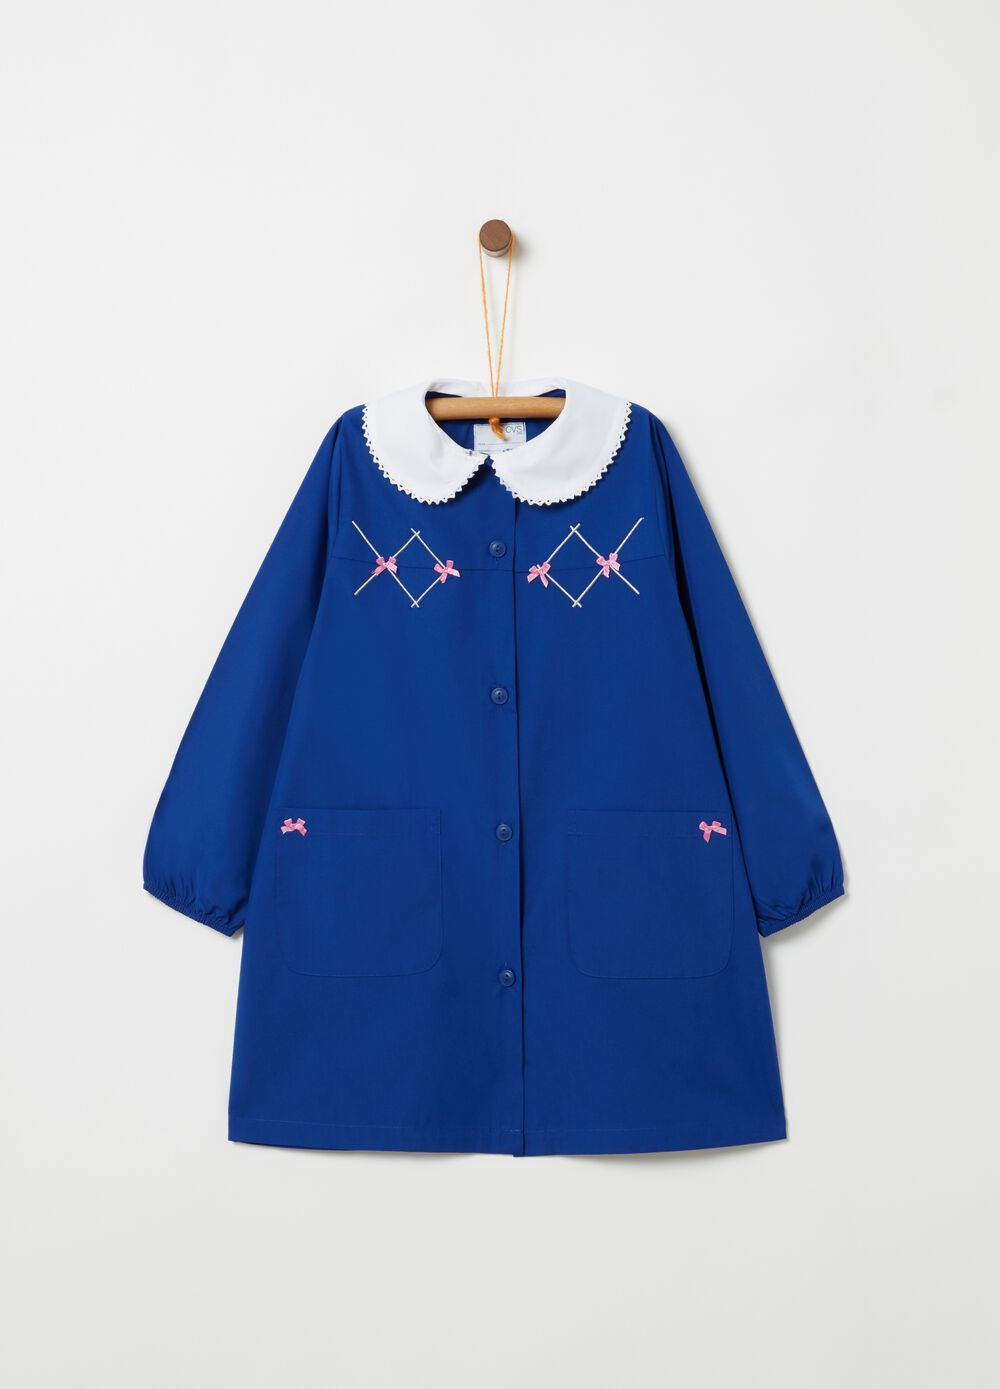 School smock with trim bows and pockets